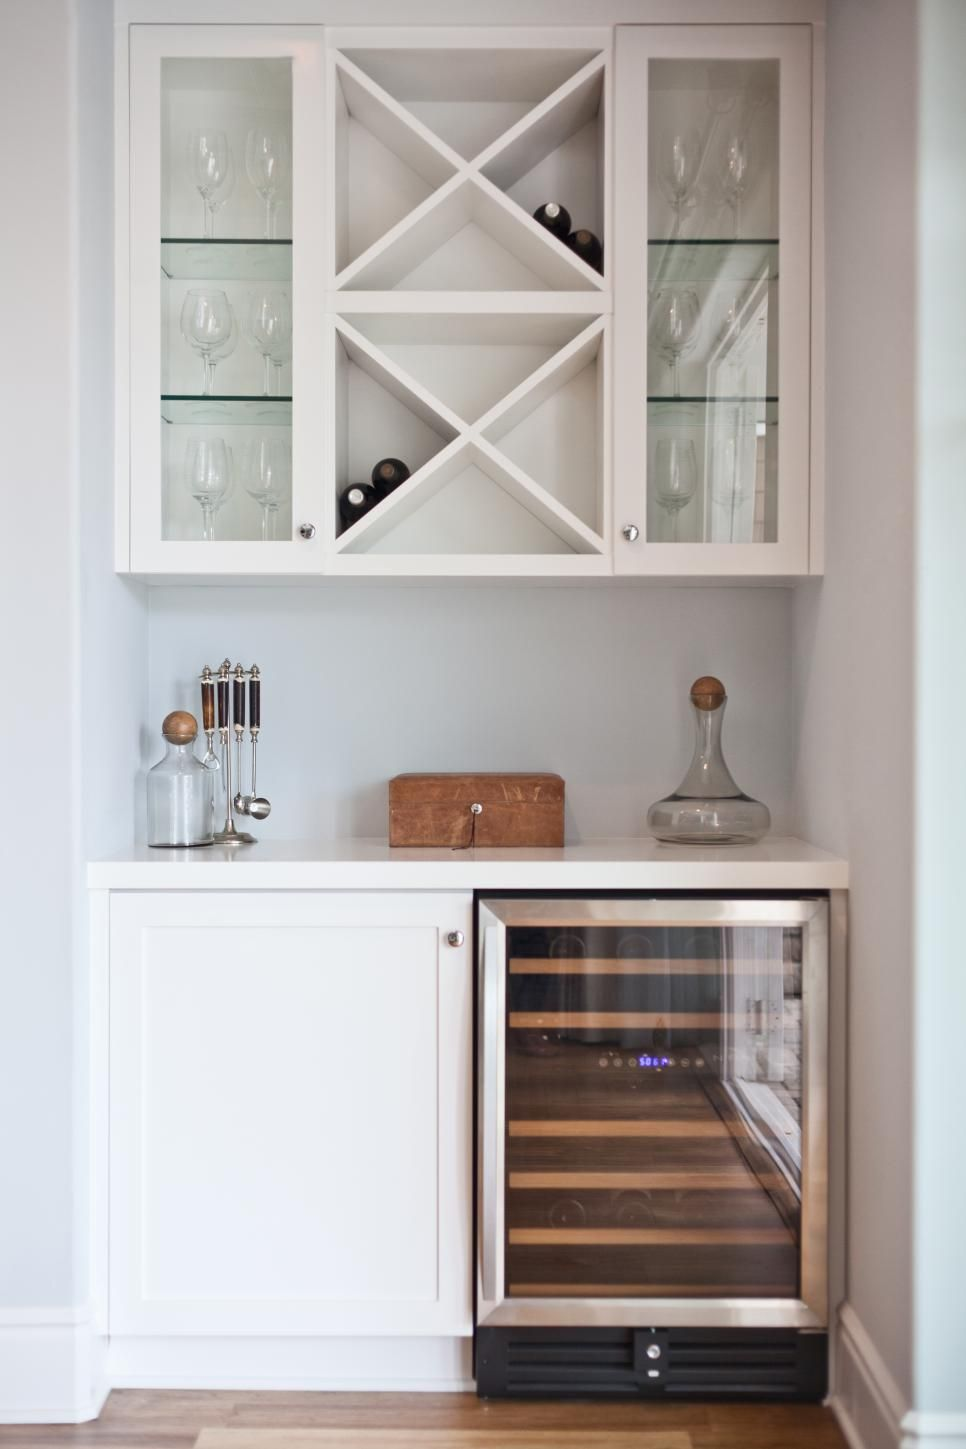 A Clean And Organized Dry Bar Is A Great Option For A Small Nook Here A Wine Refrigerator And Cabinet Creat Bars For Home Glass Front Cabinets Dining Storage